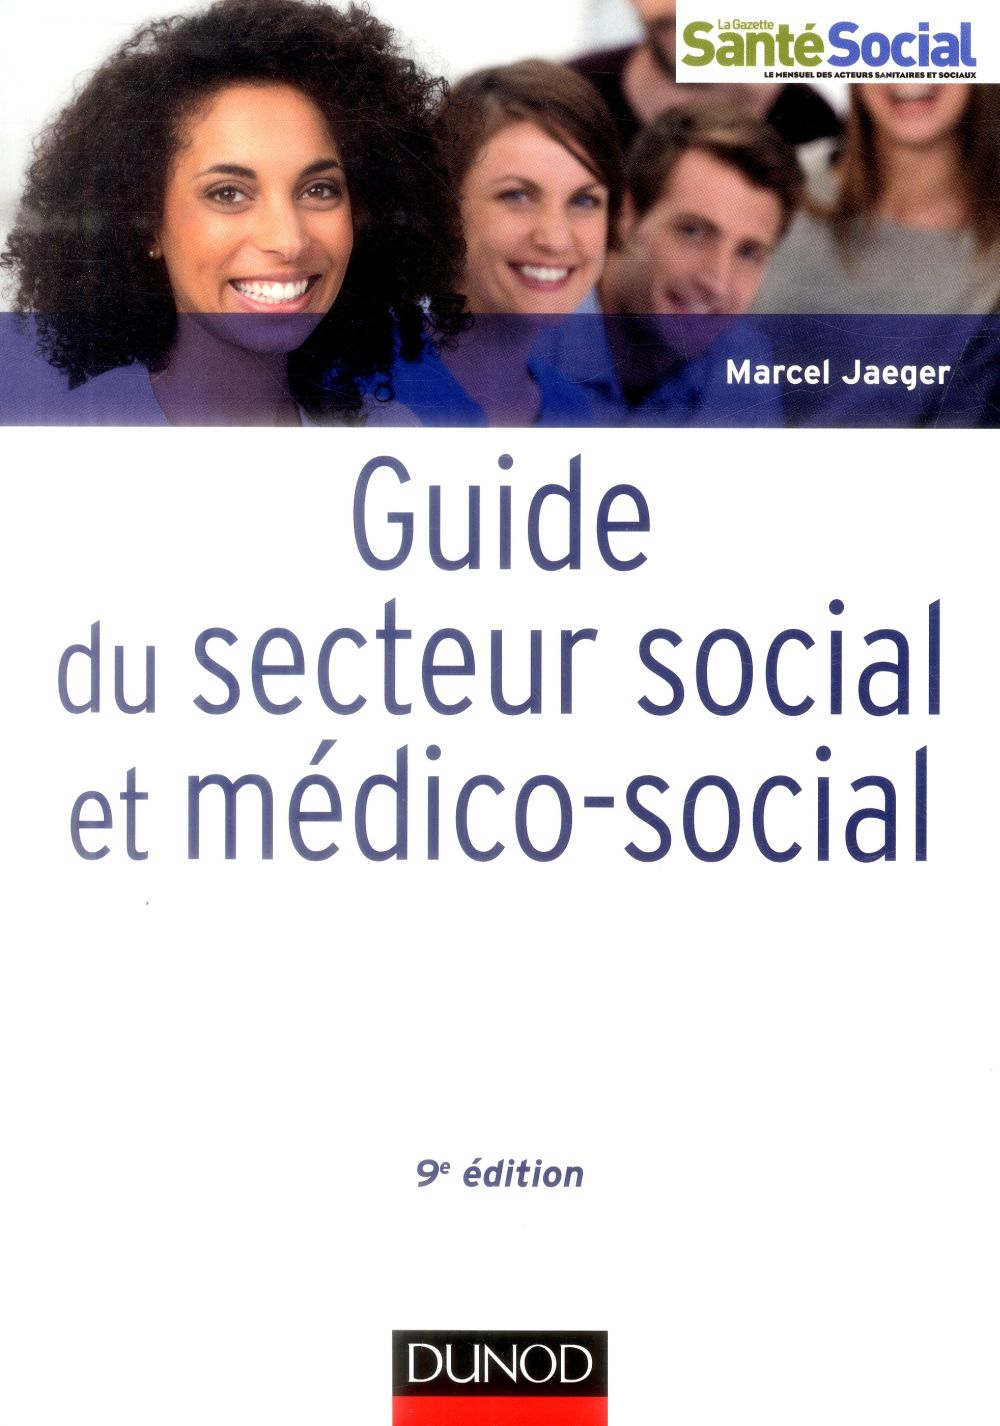 Guide du secteur social et médico-social ; professions, institutions, concepts (9e édition)